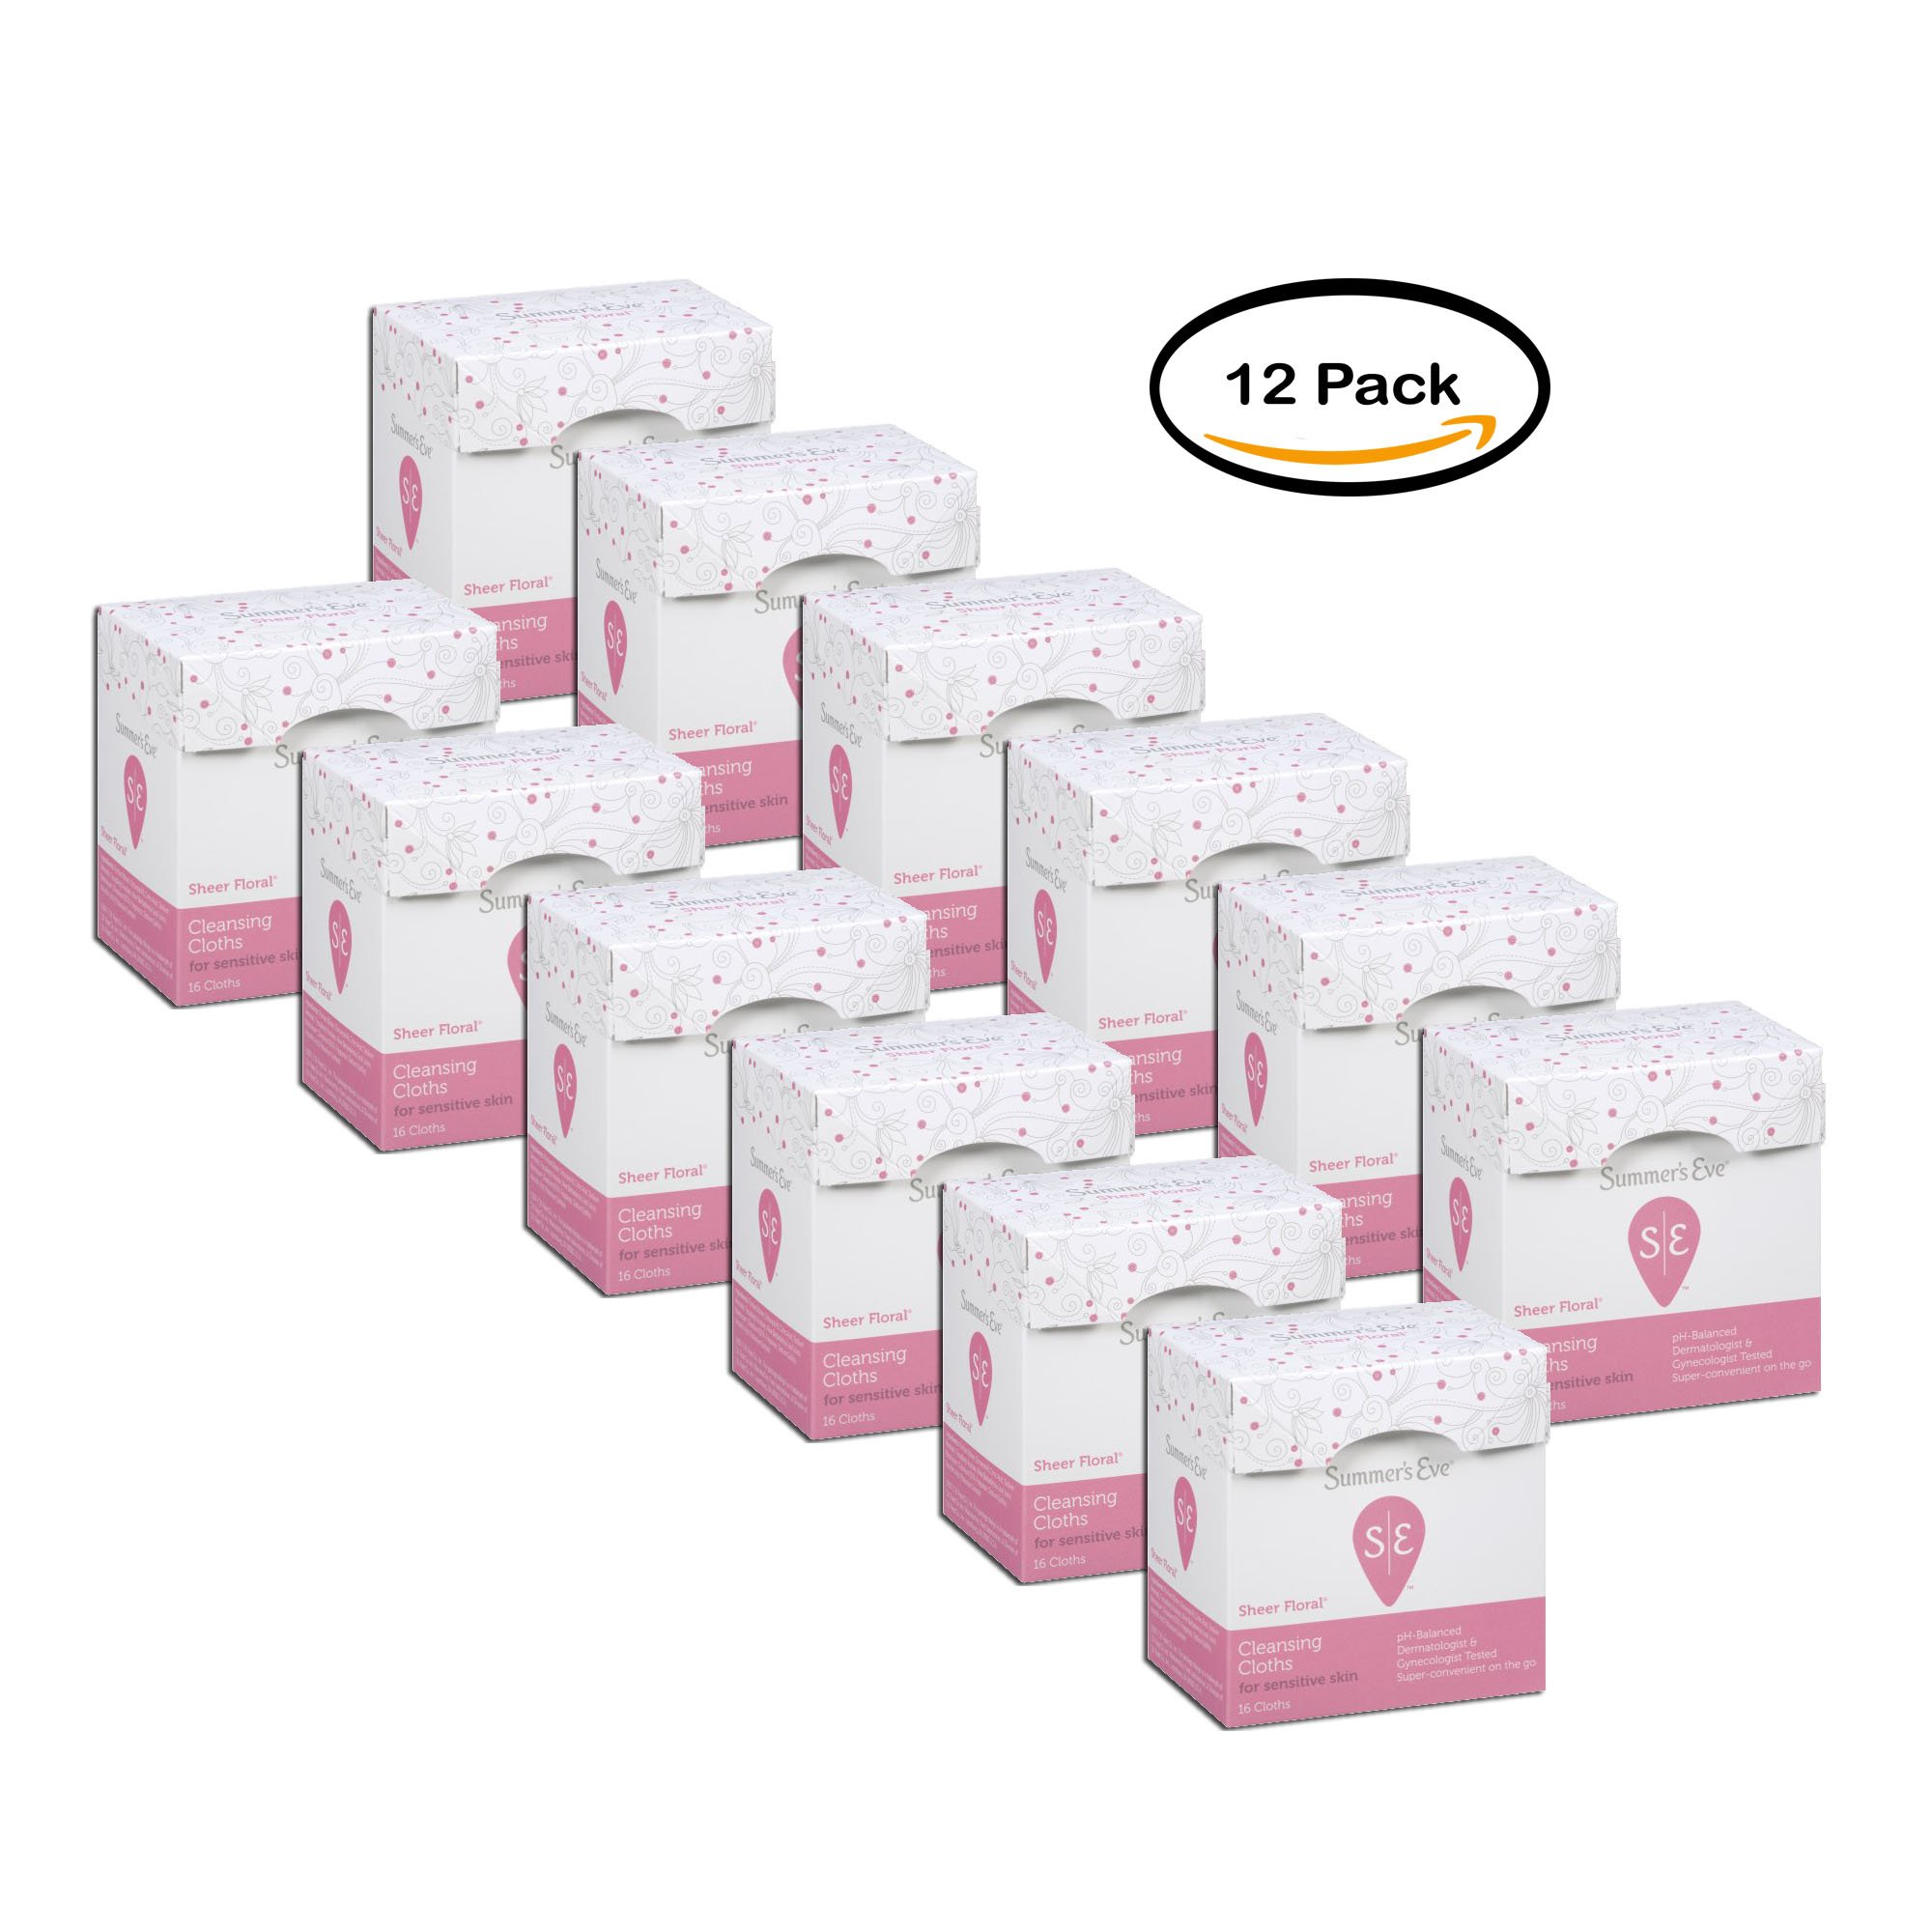 PACK OF 12 - Summer's Eve Feminine Cleansing Cloths For Sensitive Skin Individually Wrapped w/Sheer Floral, 16